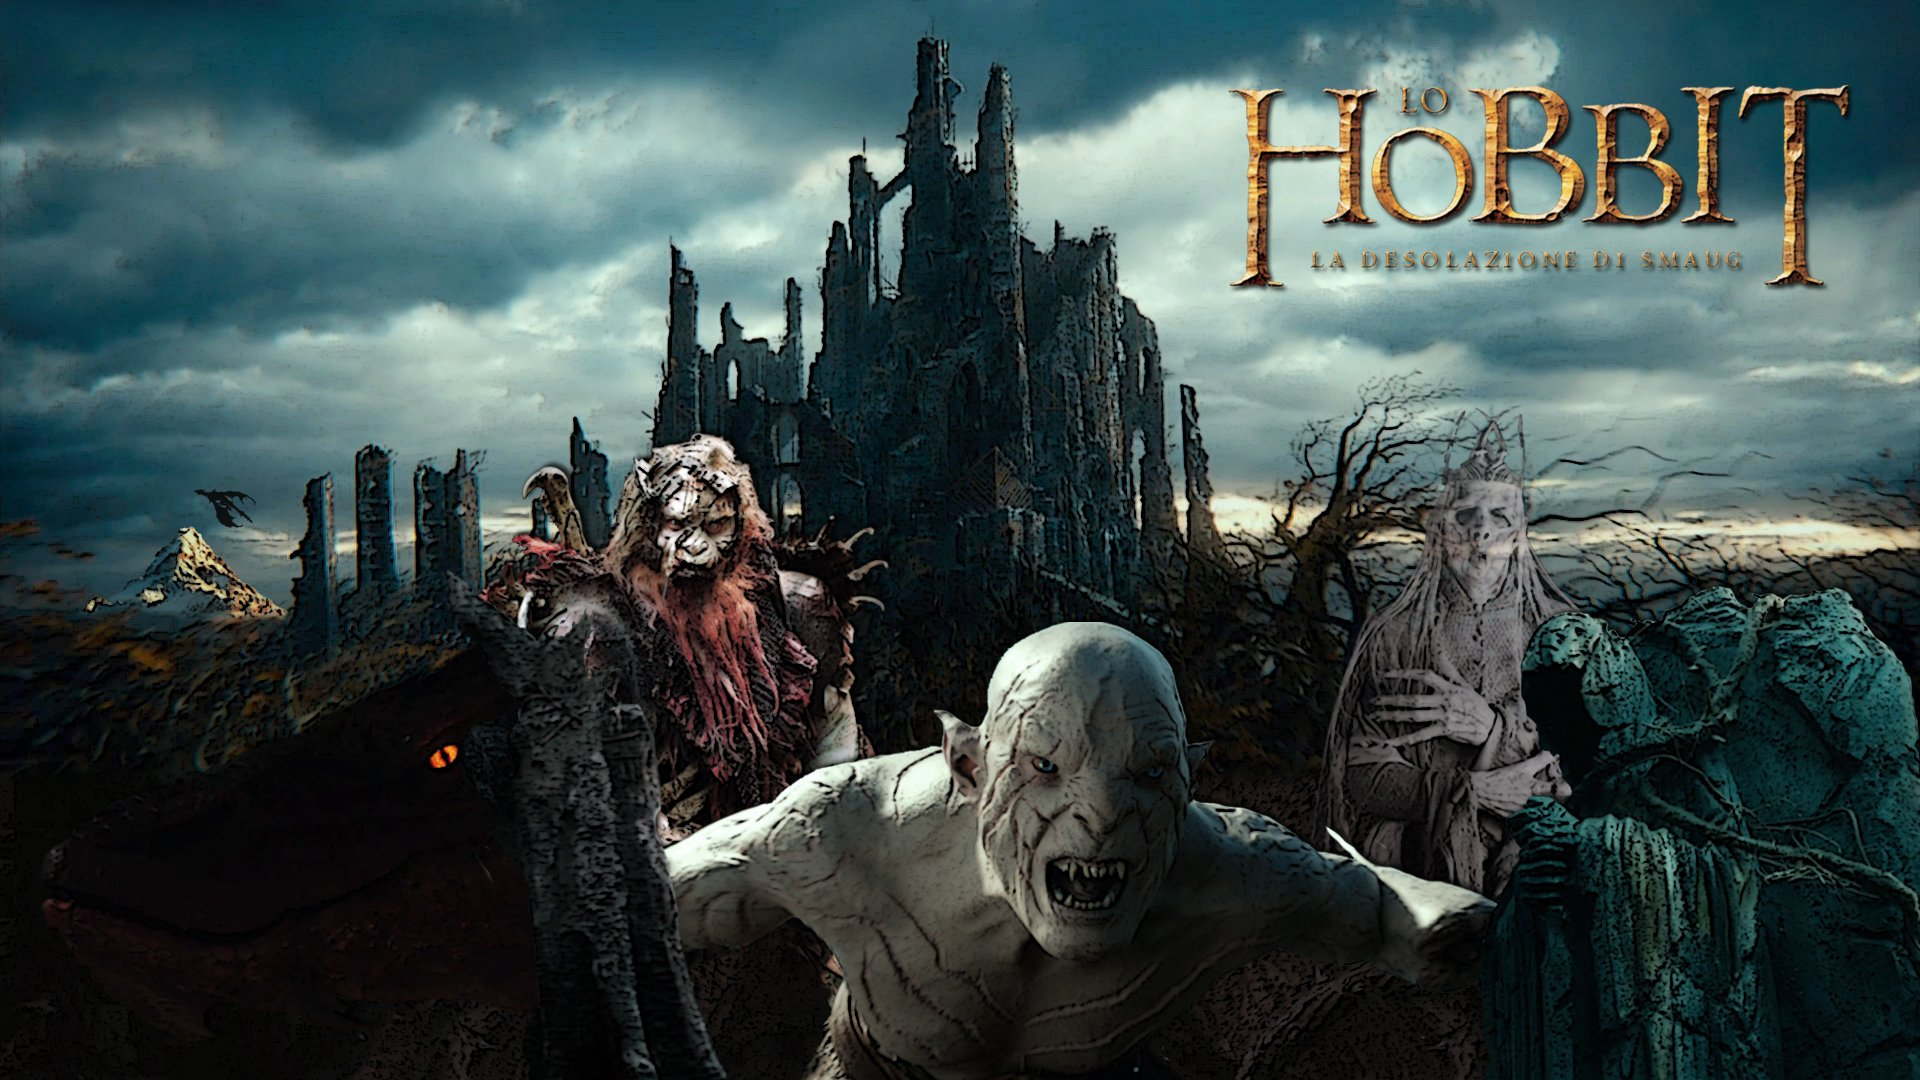 The Hobbit Movie Wallpaper Wallpaper size 1920x1080 1920x1080